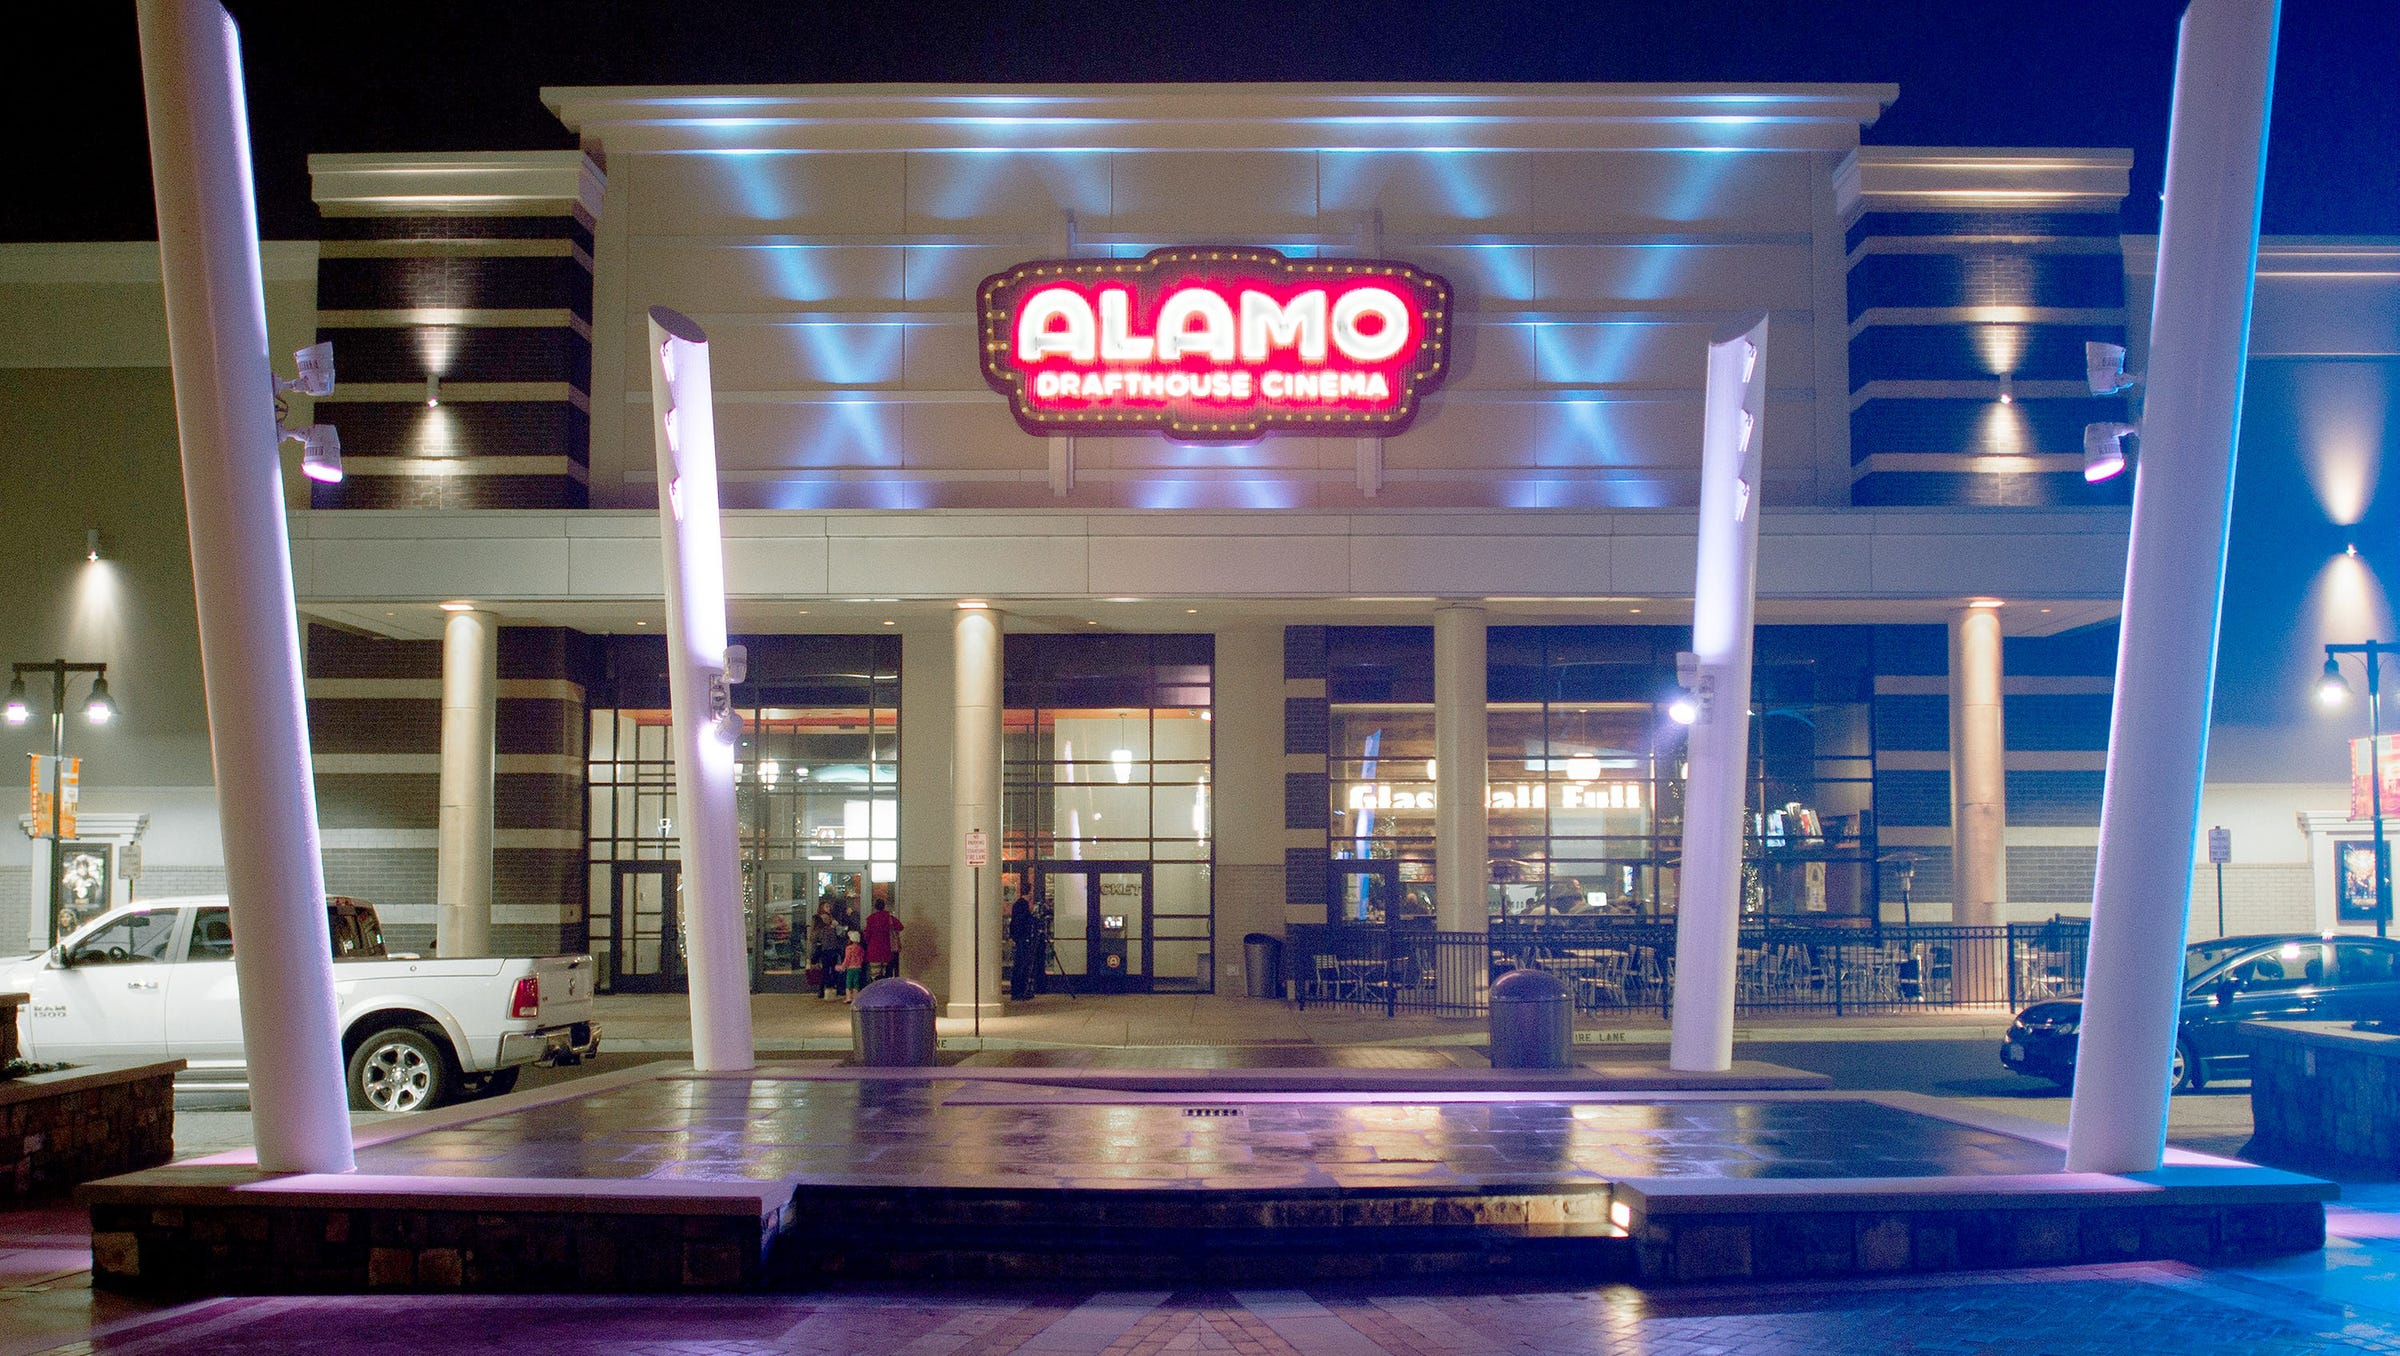 Alamo Drafthouse Movie Theater Planned For Midtown Detroit